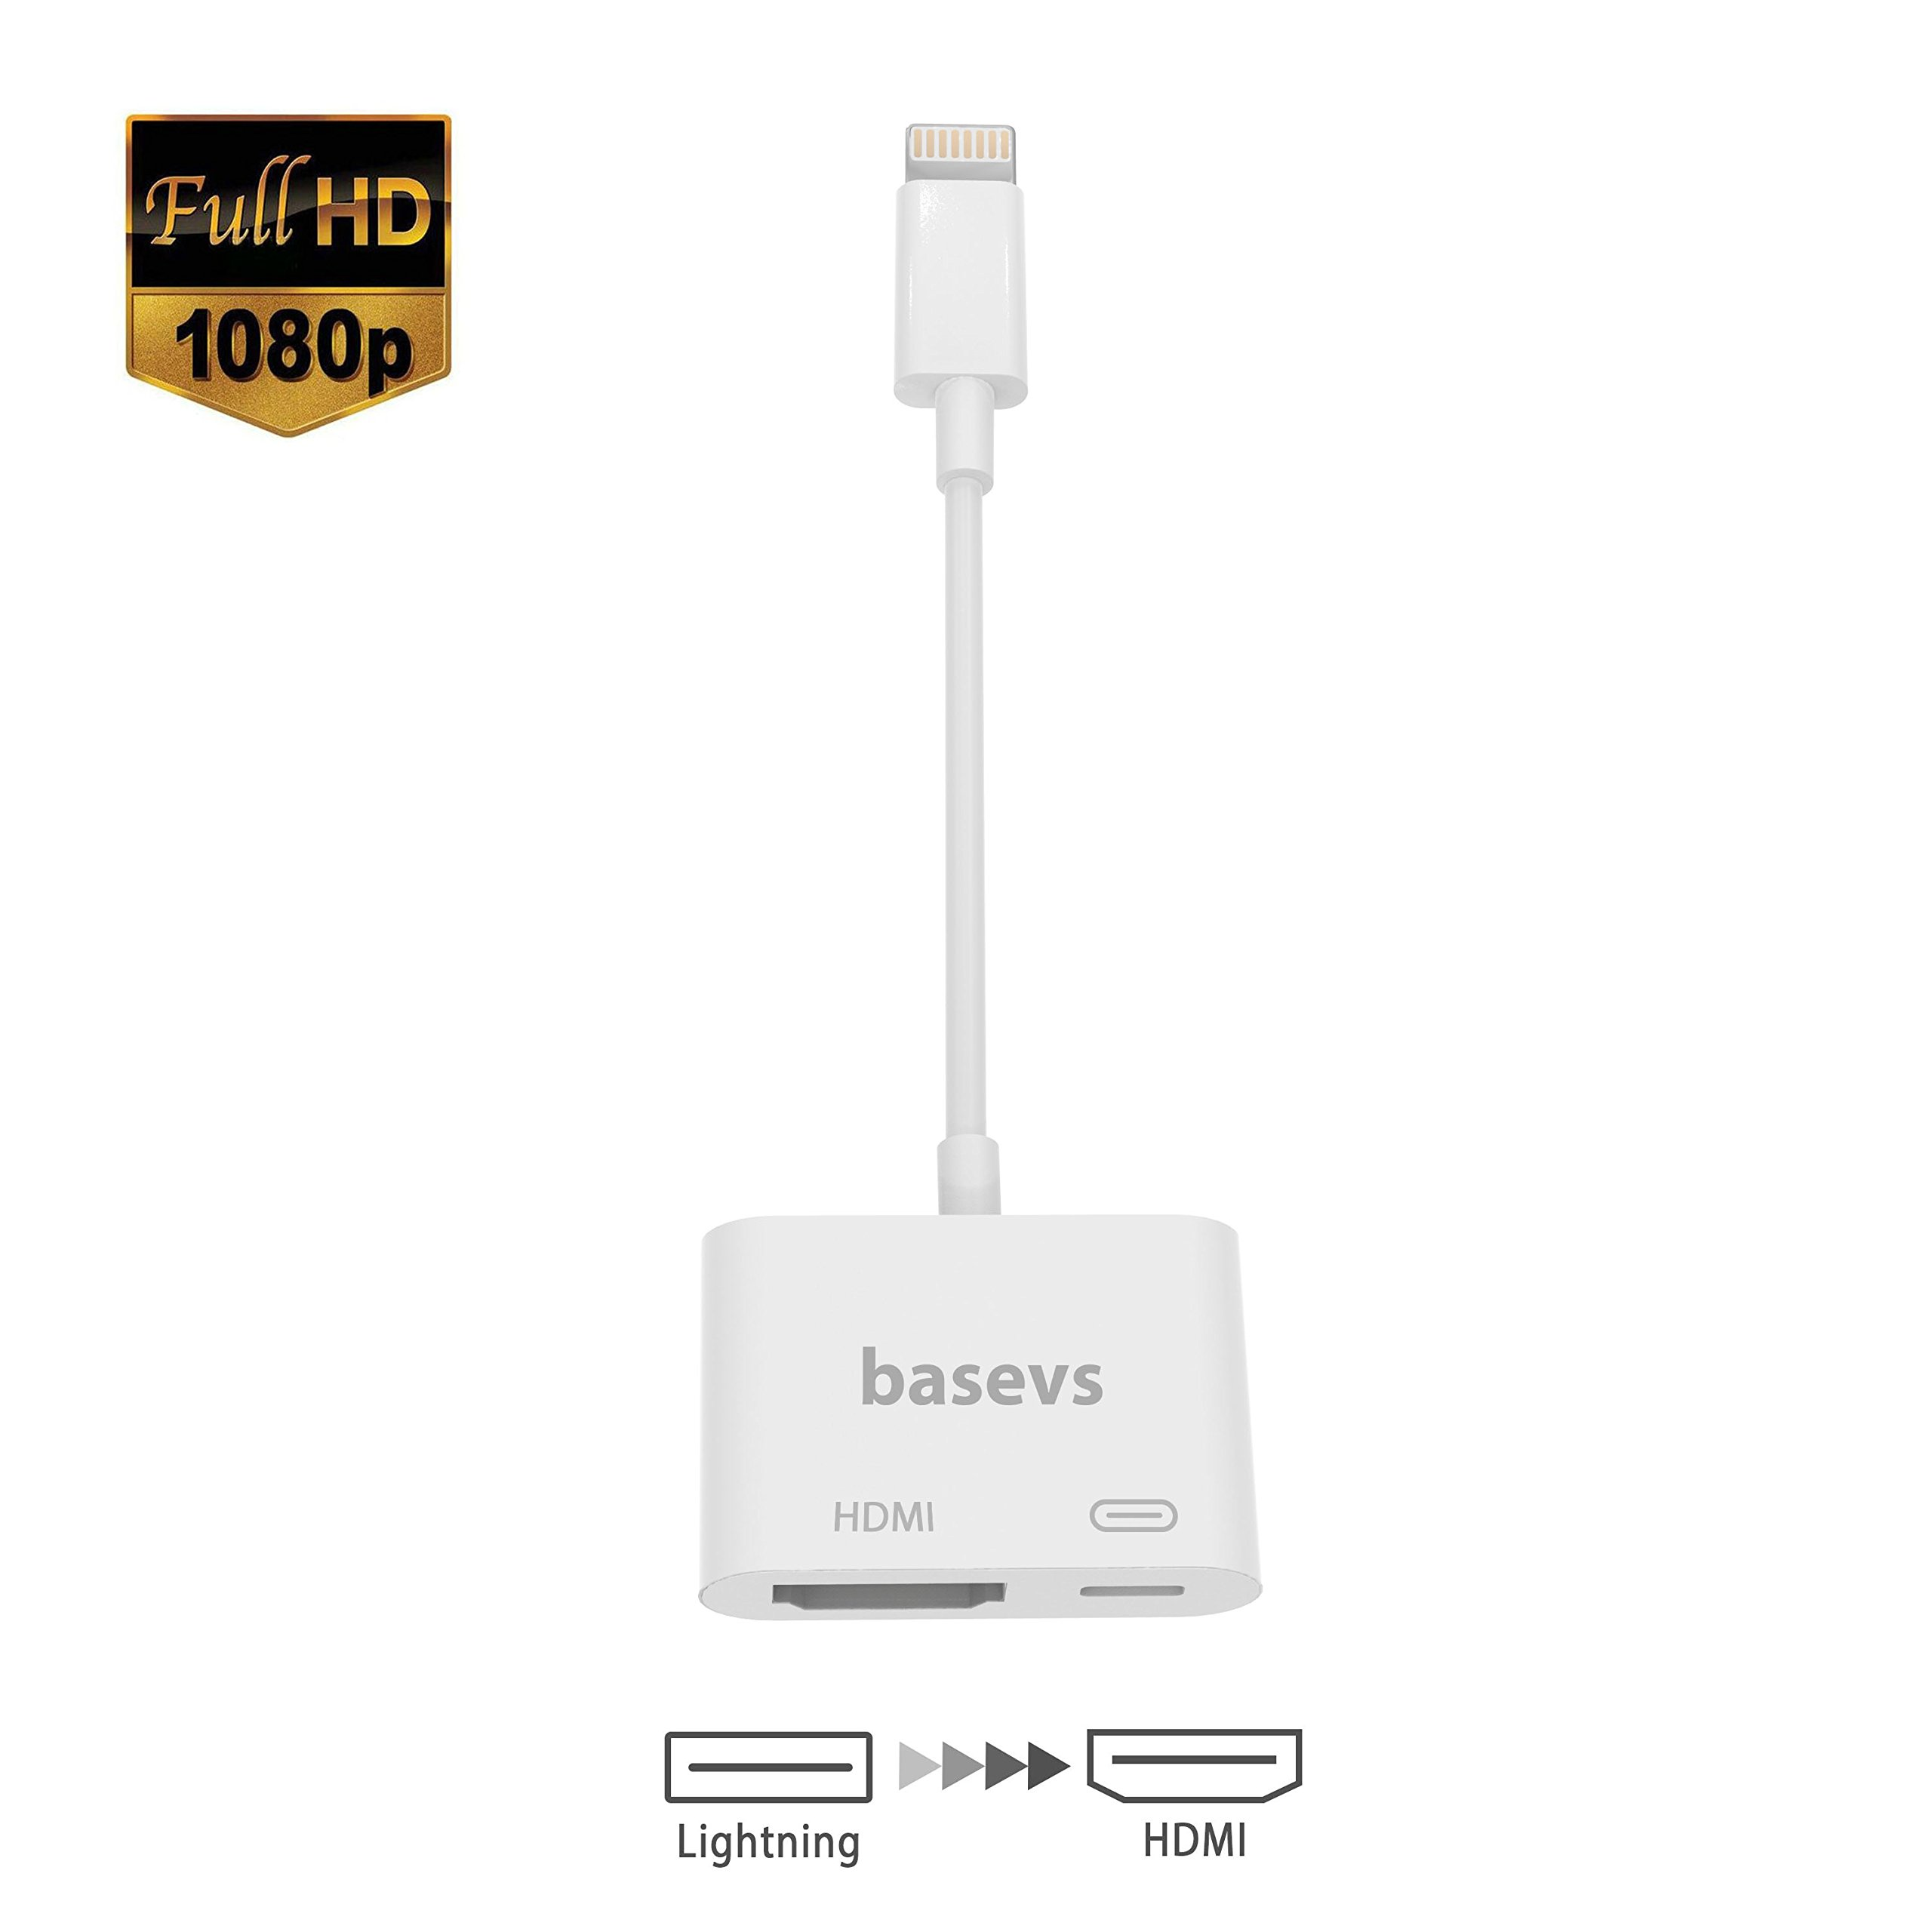 Lightning to HDMI, Lightning Digital AV Adapter with Lightning 8Pin Charging for HDTV 1080P Monitor Projector for iPhone, iPad and iPod